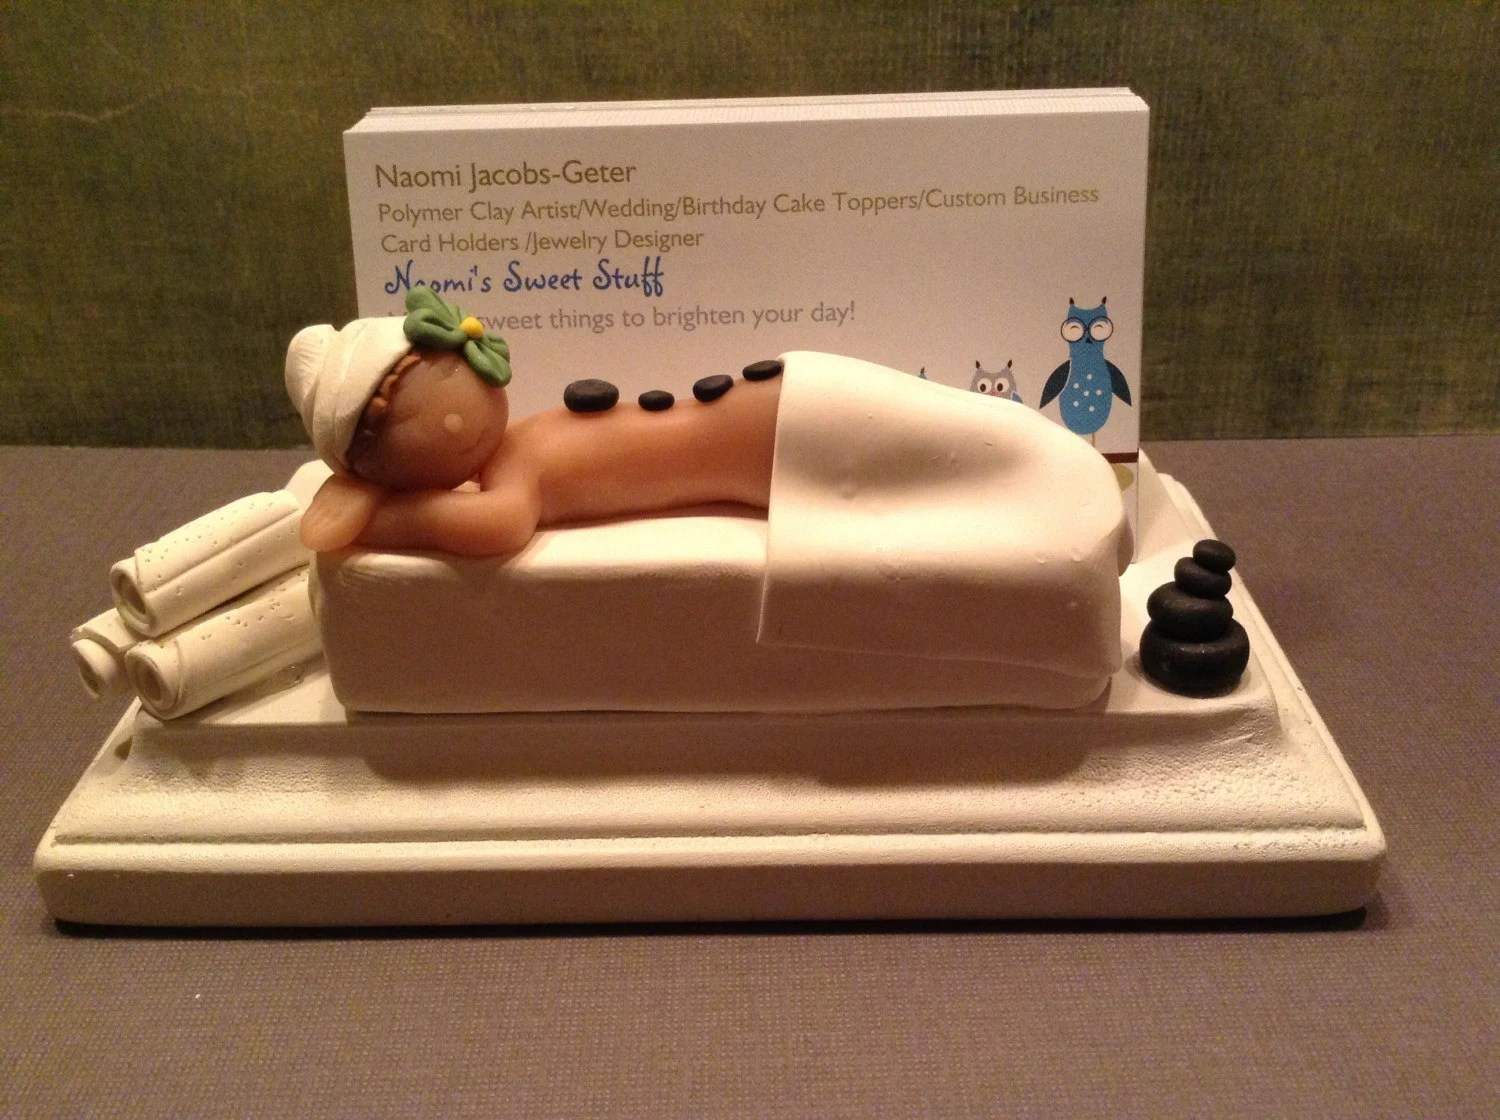 Polymer Clay Business Card Holder Spa Business By